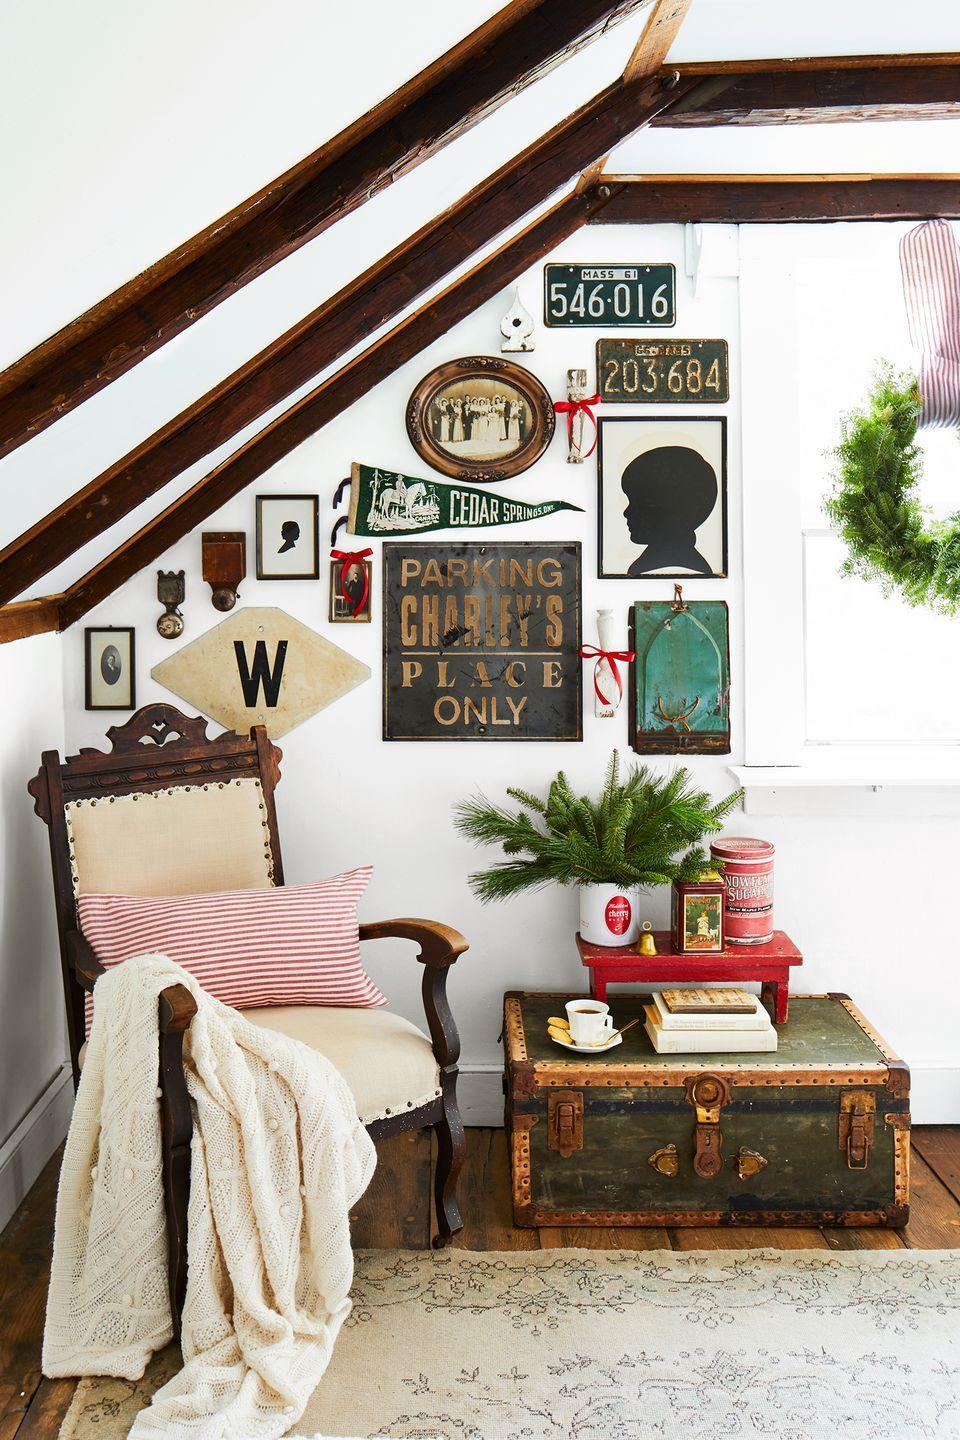 <p>Play up your love of all things vintage by displaying your favorite curios, whether it's a decorative trunk or signage that can add character to a gallery wall. <br></p>